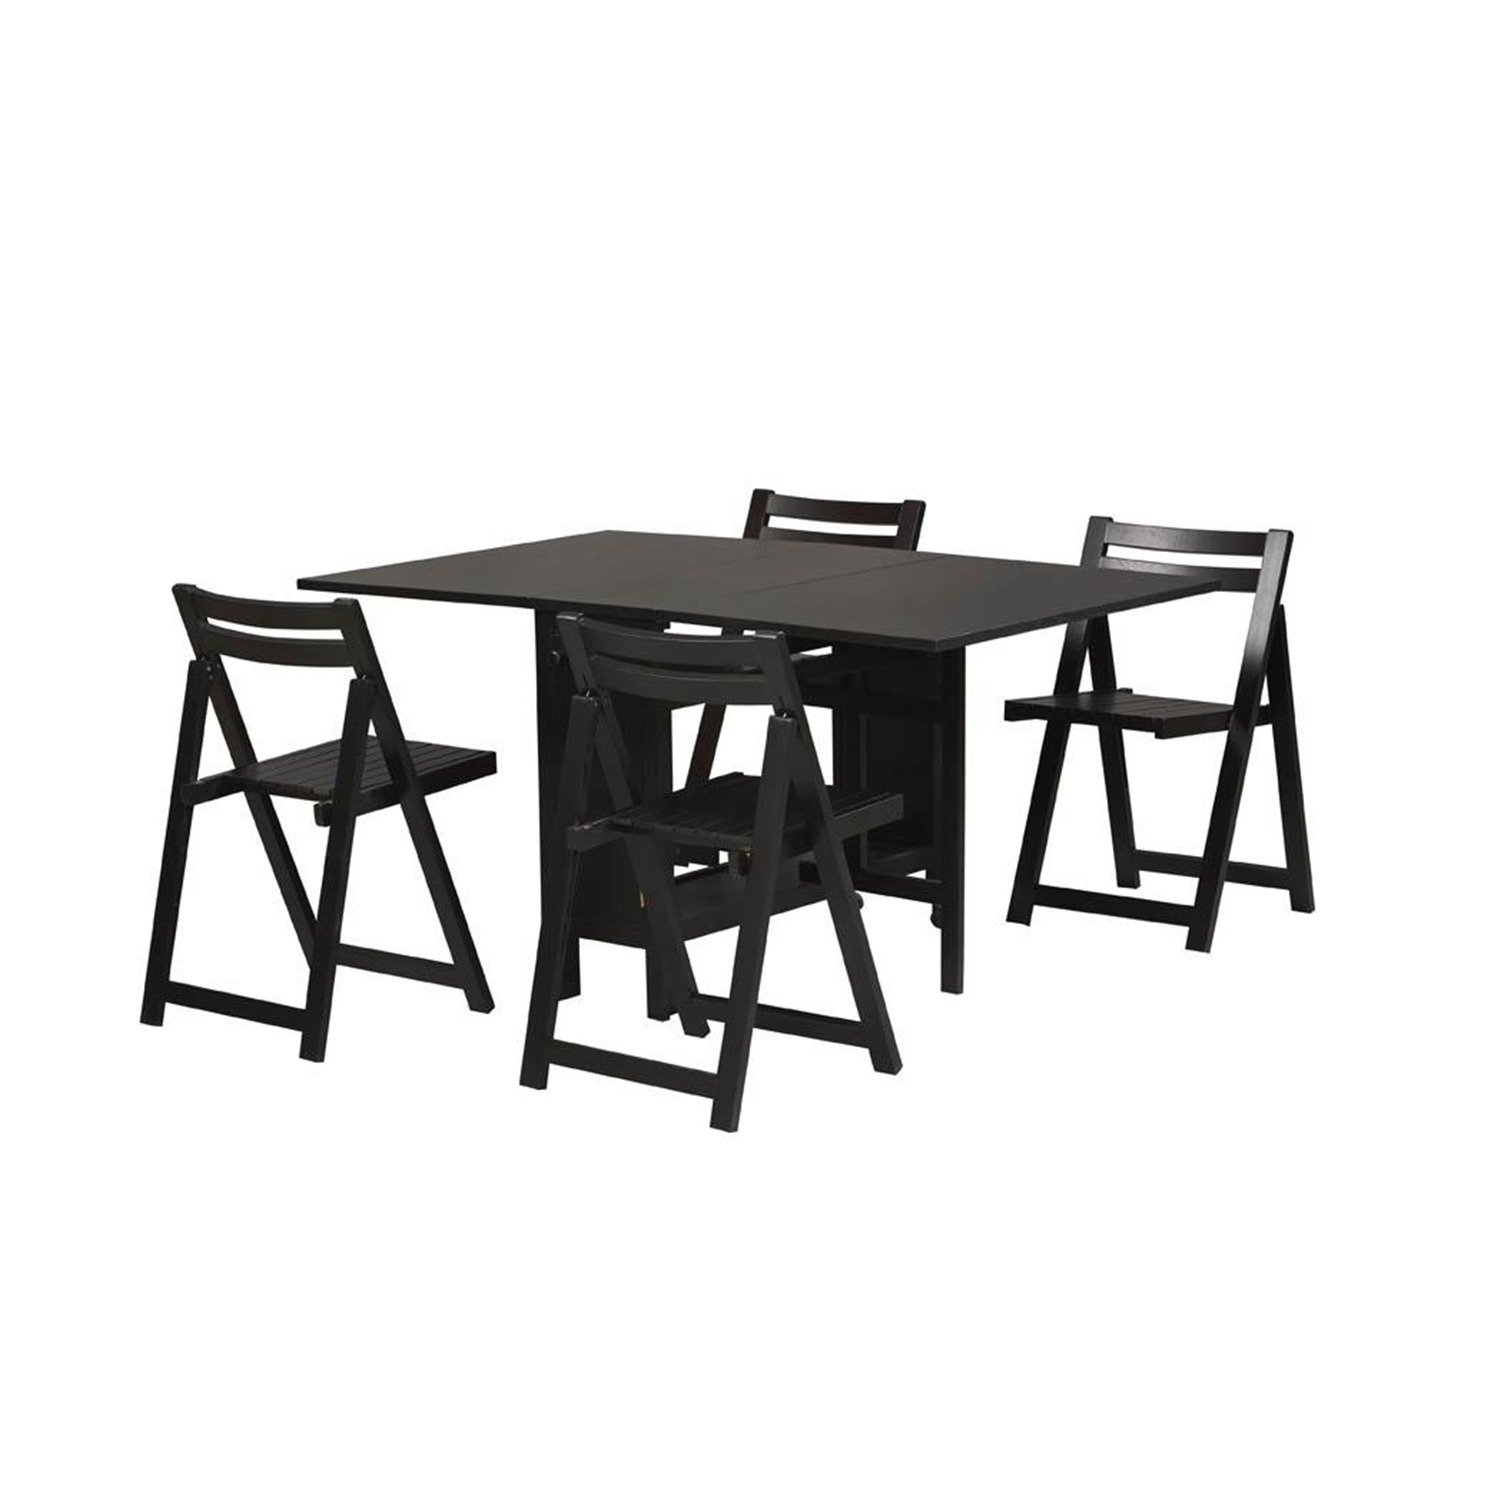 Linon Space Saver 5 Piece Dining Set by OJ Commerce 901BLK  : i133978 from www.ojcommerce.com size 1048 x 699 jpeg 42kB